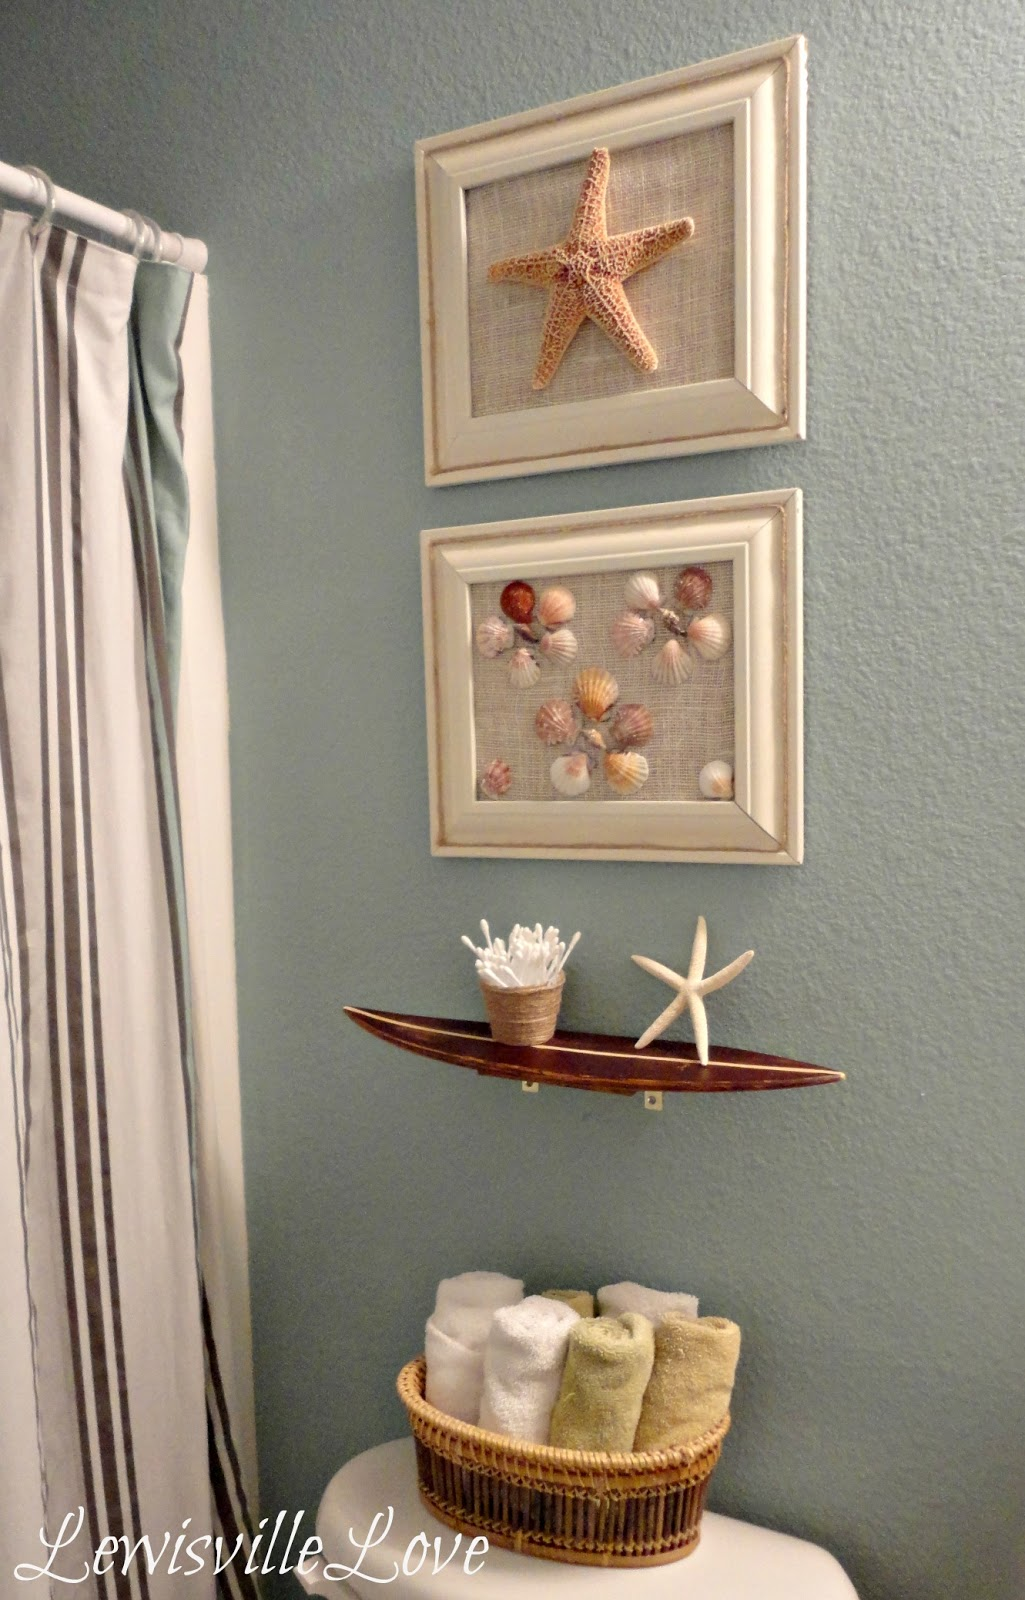 Lewisville love beach theme bathroom reveal for Coastal bathroom design